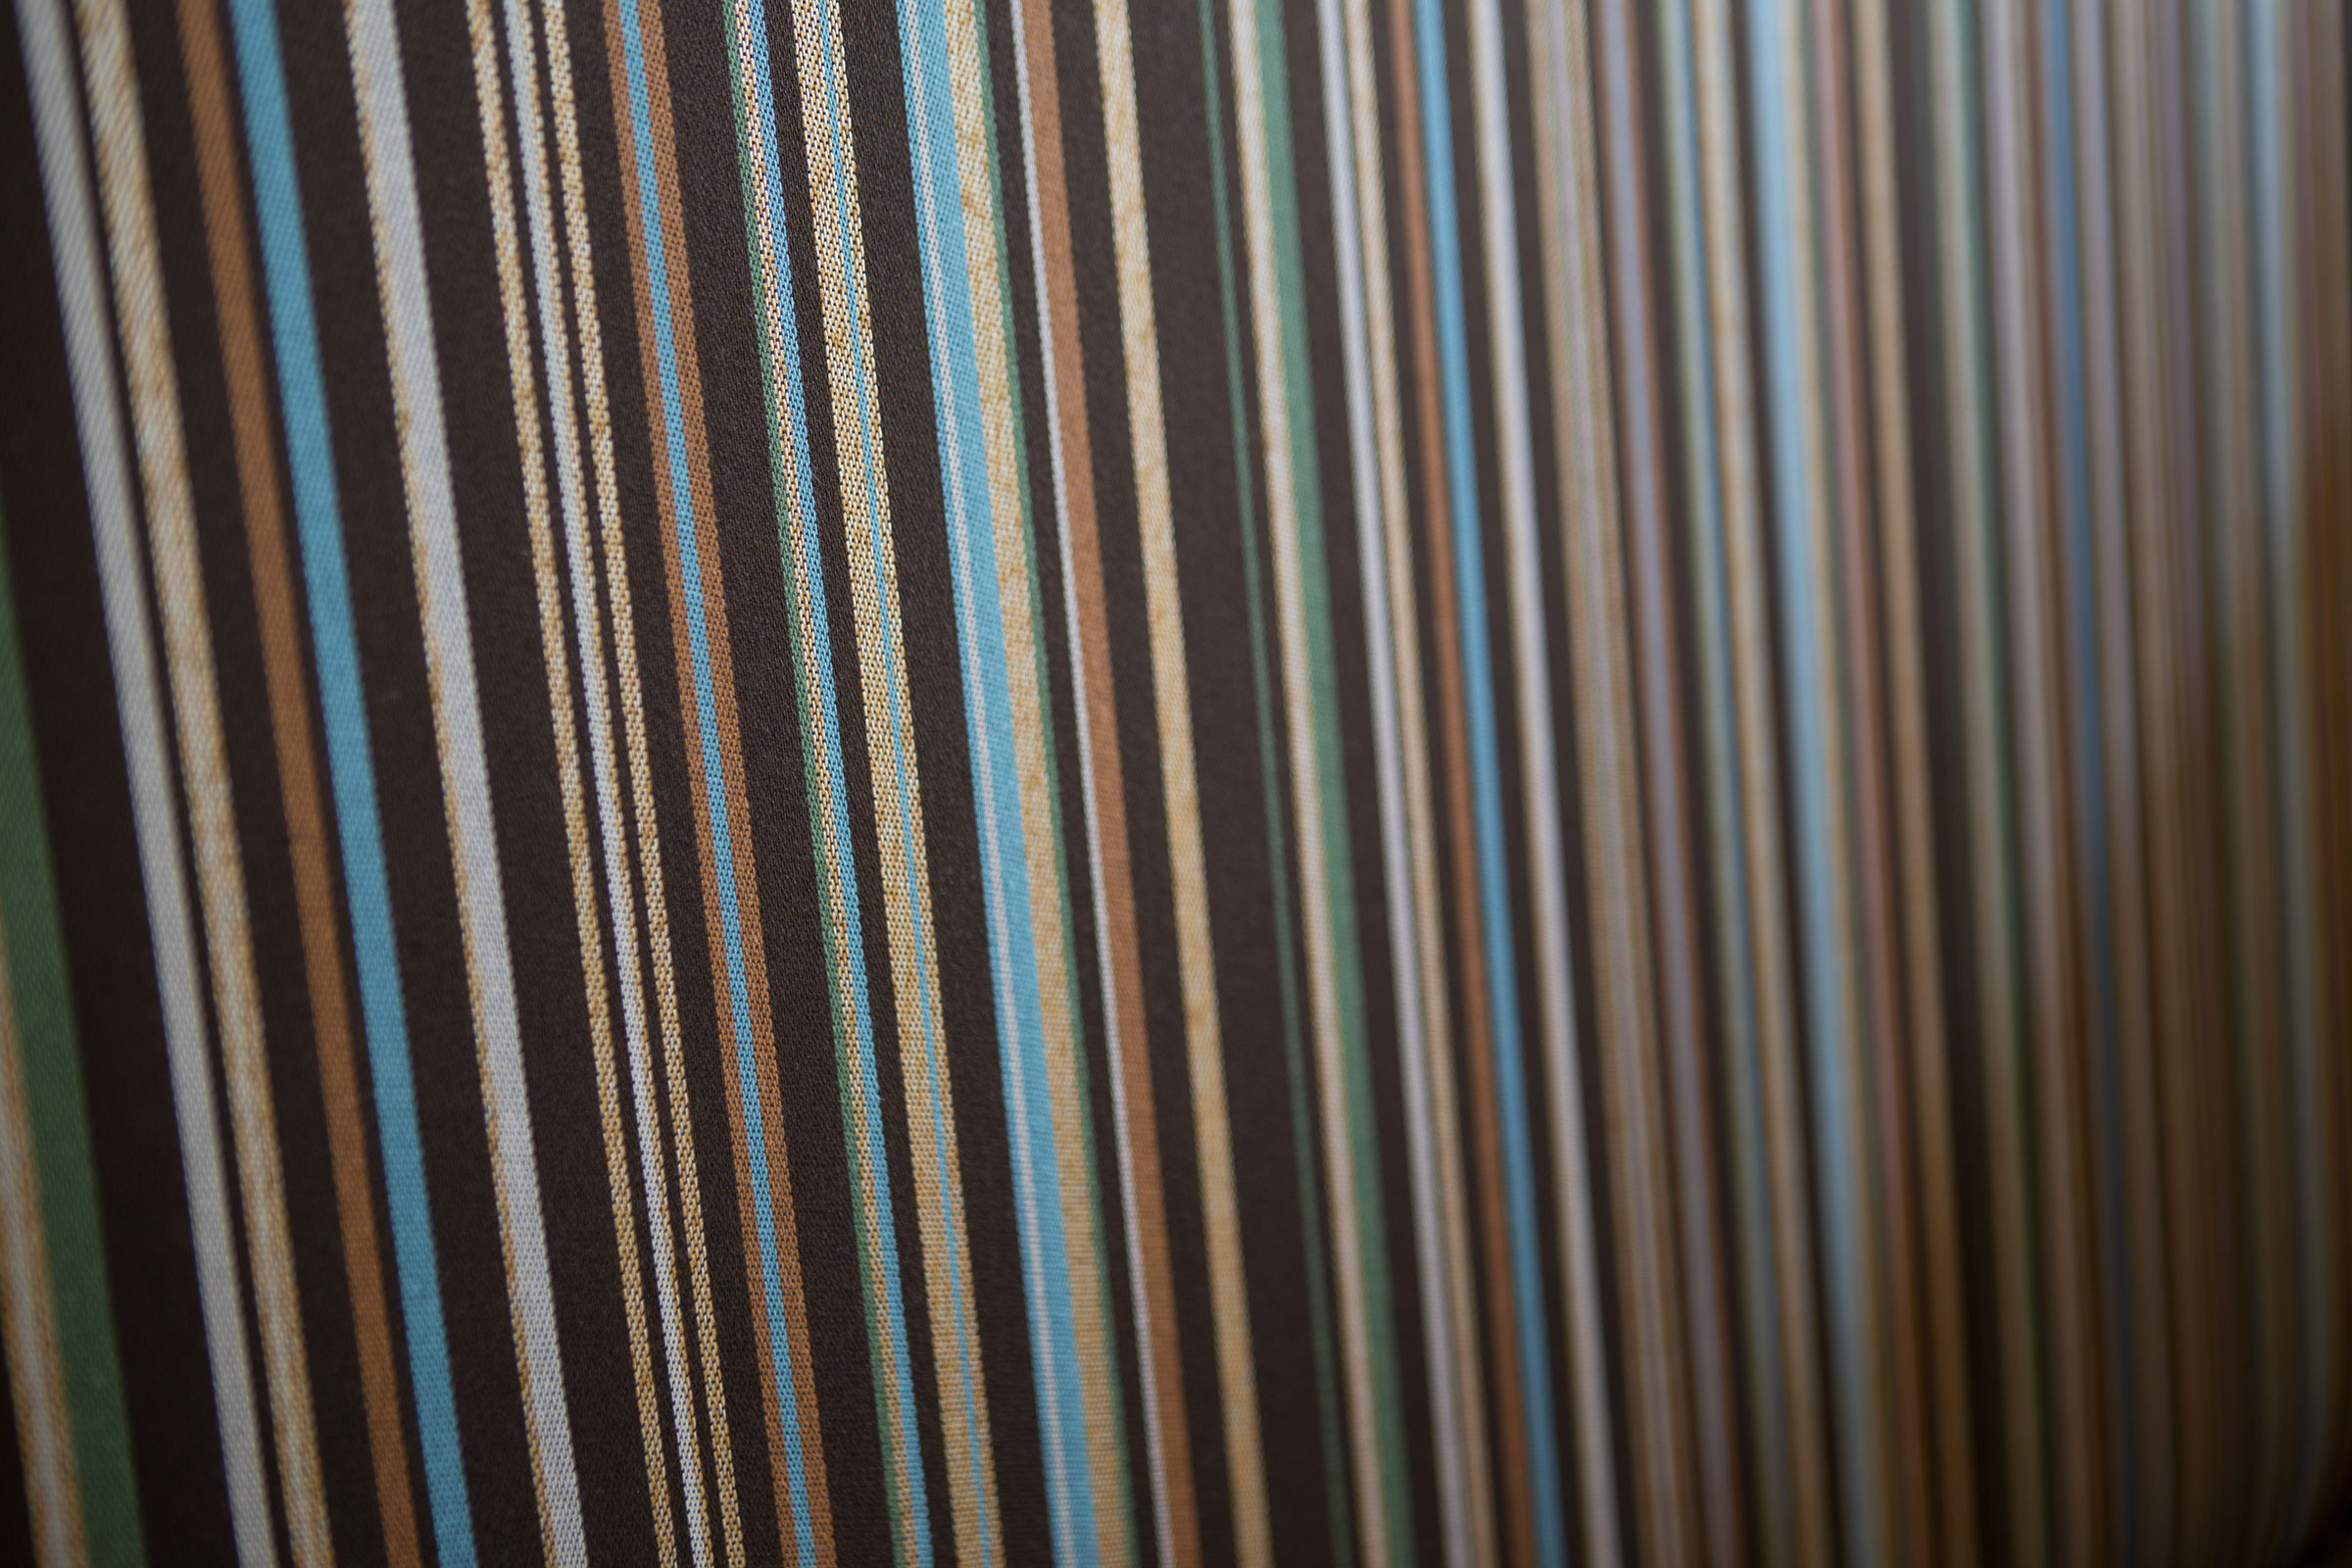 chair stripes pattern close up